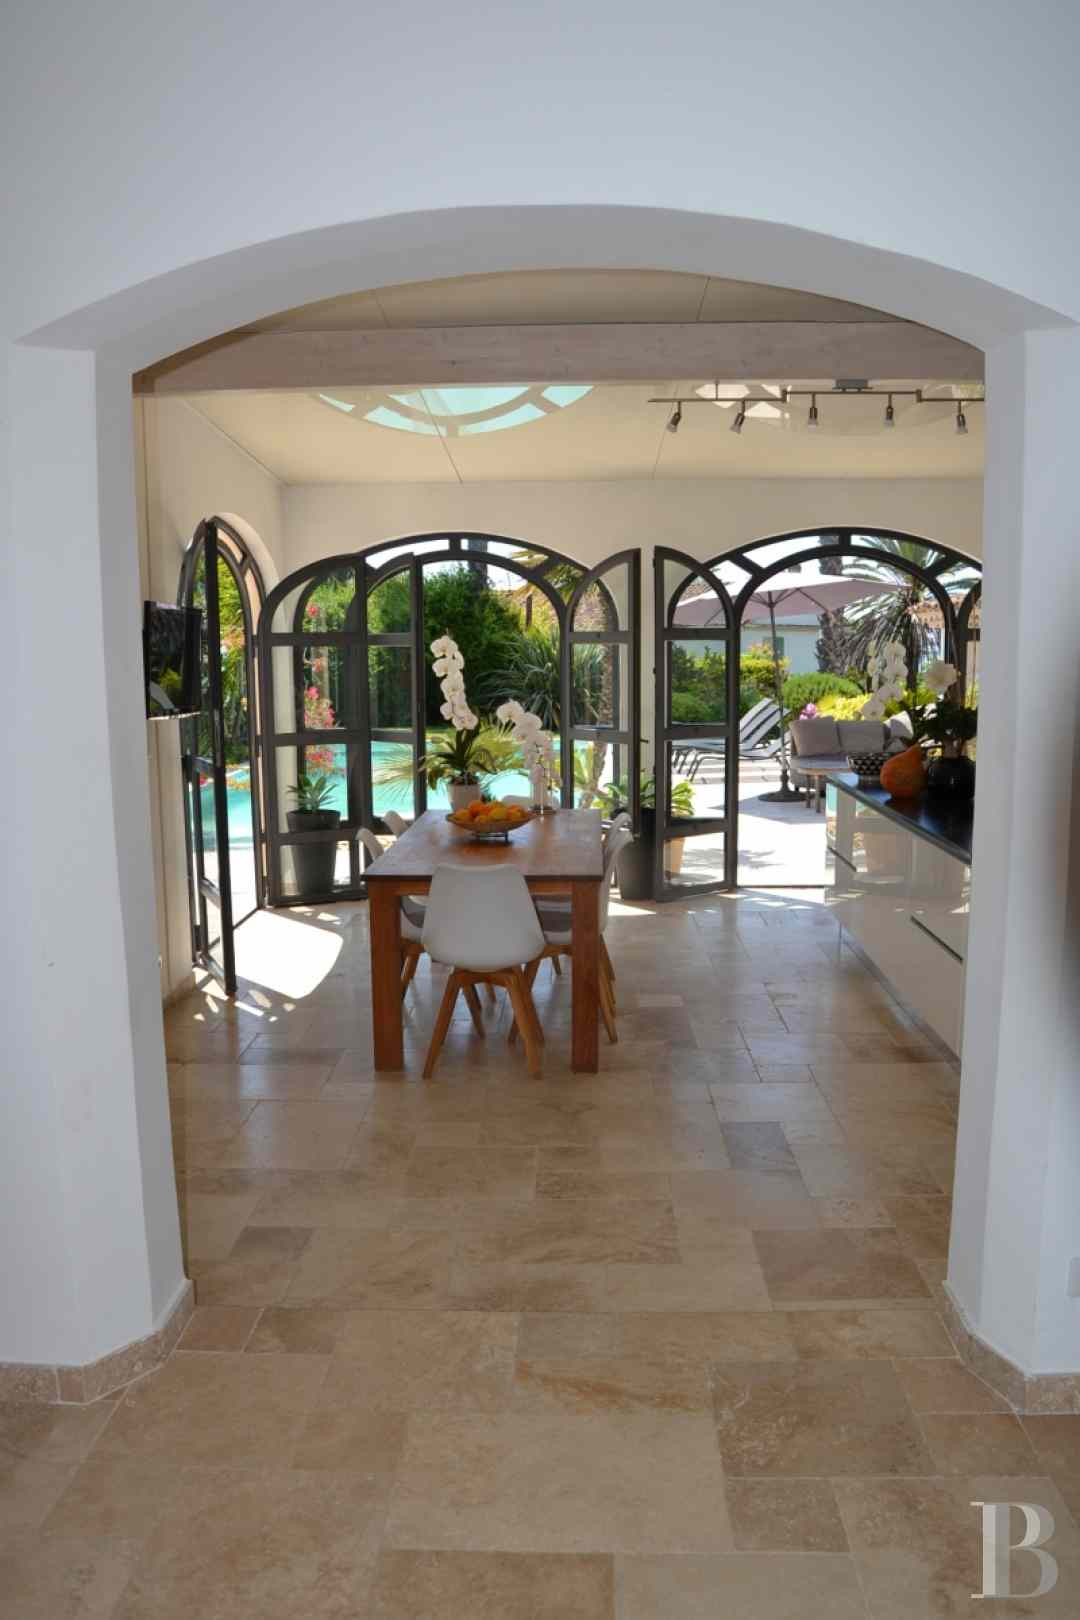 property for sale France provence cote dazur residences 20th - 16 zoom